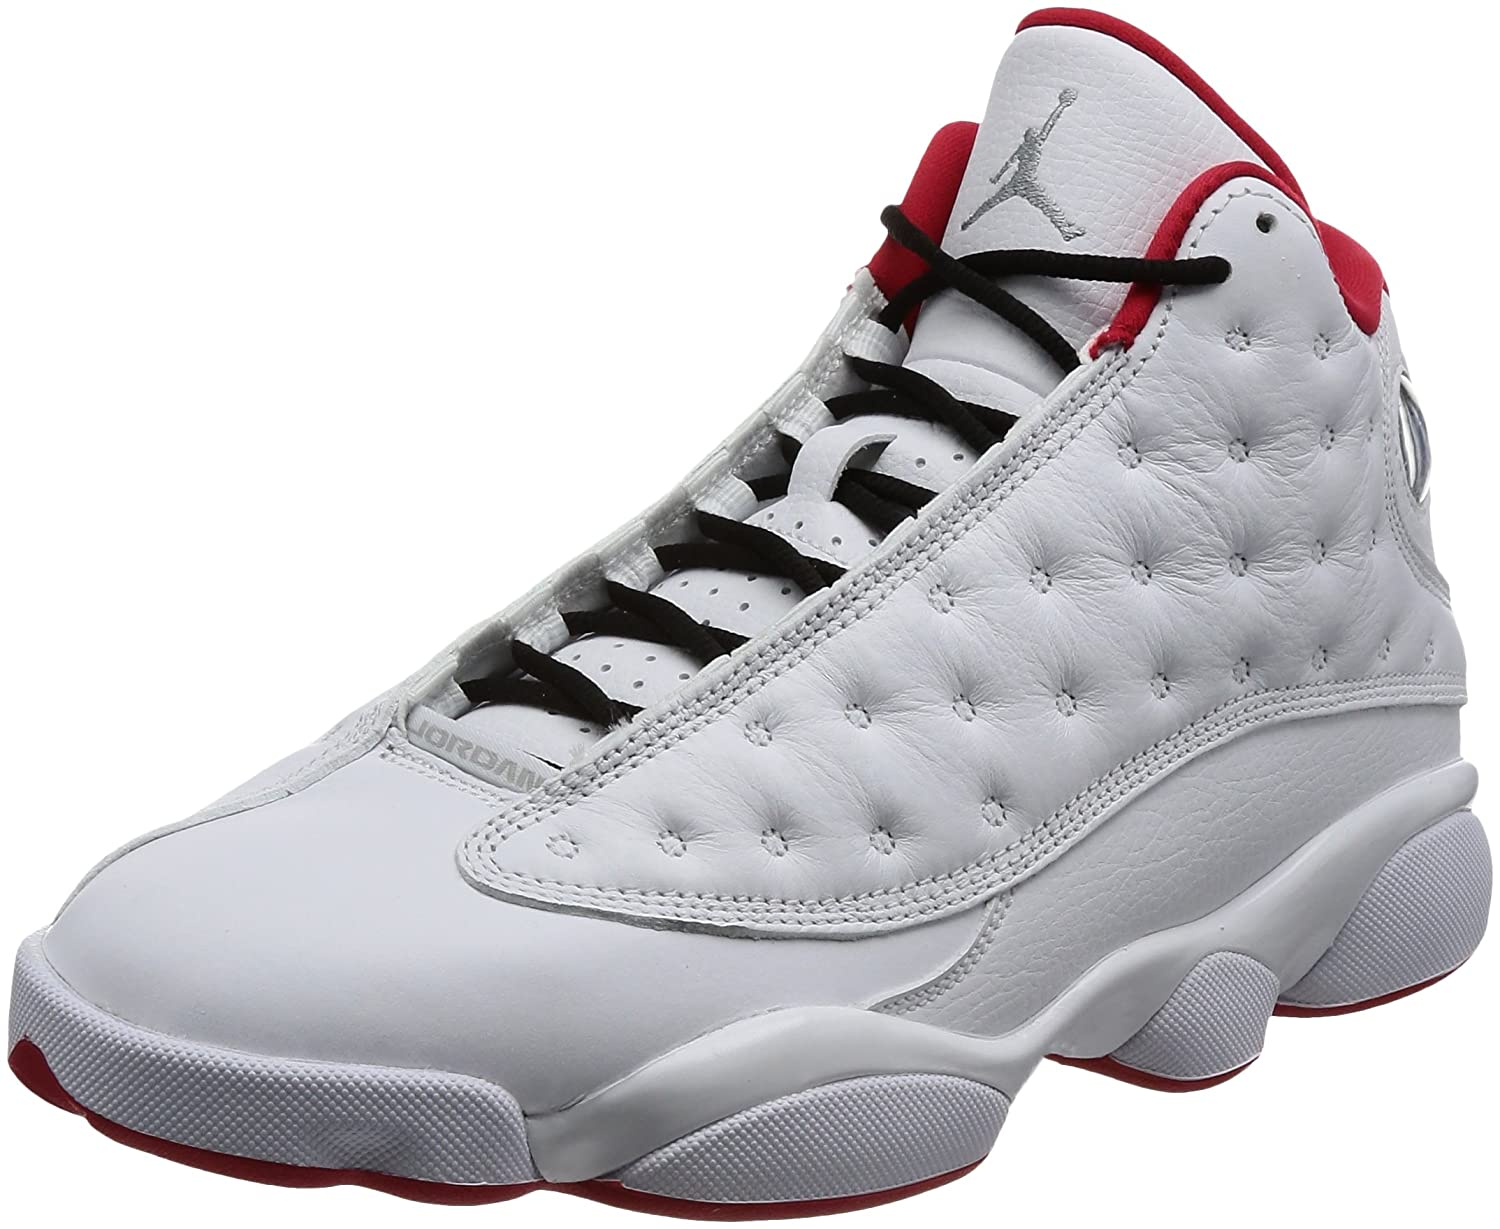 check out 2e5b9 53ec0 Amazon.com | Air Jordan 13 Retro